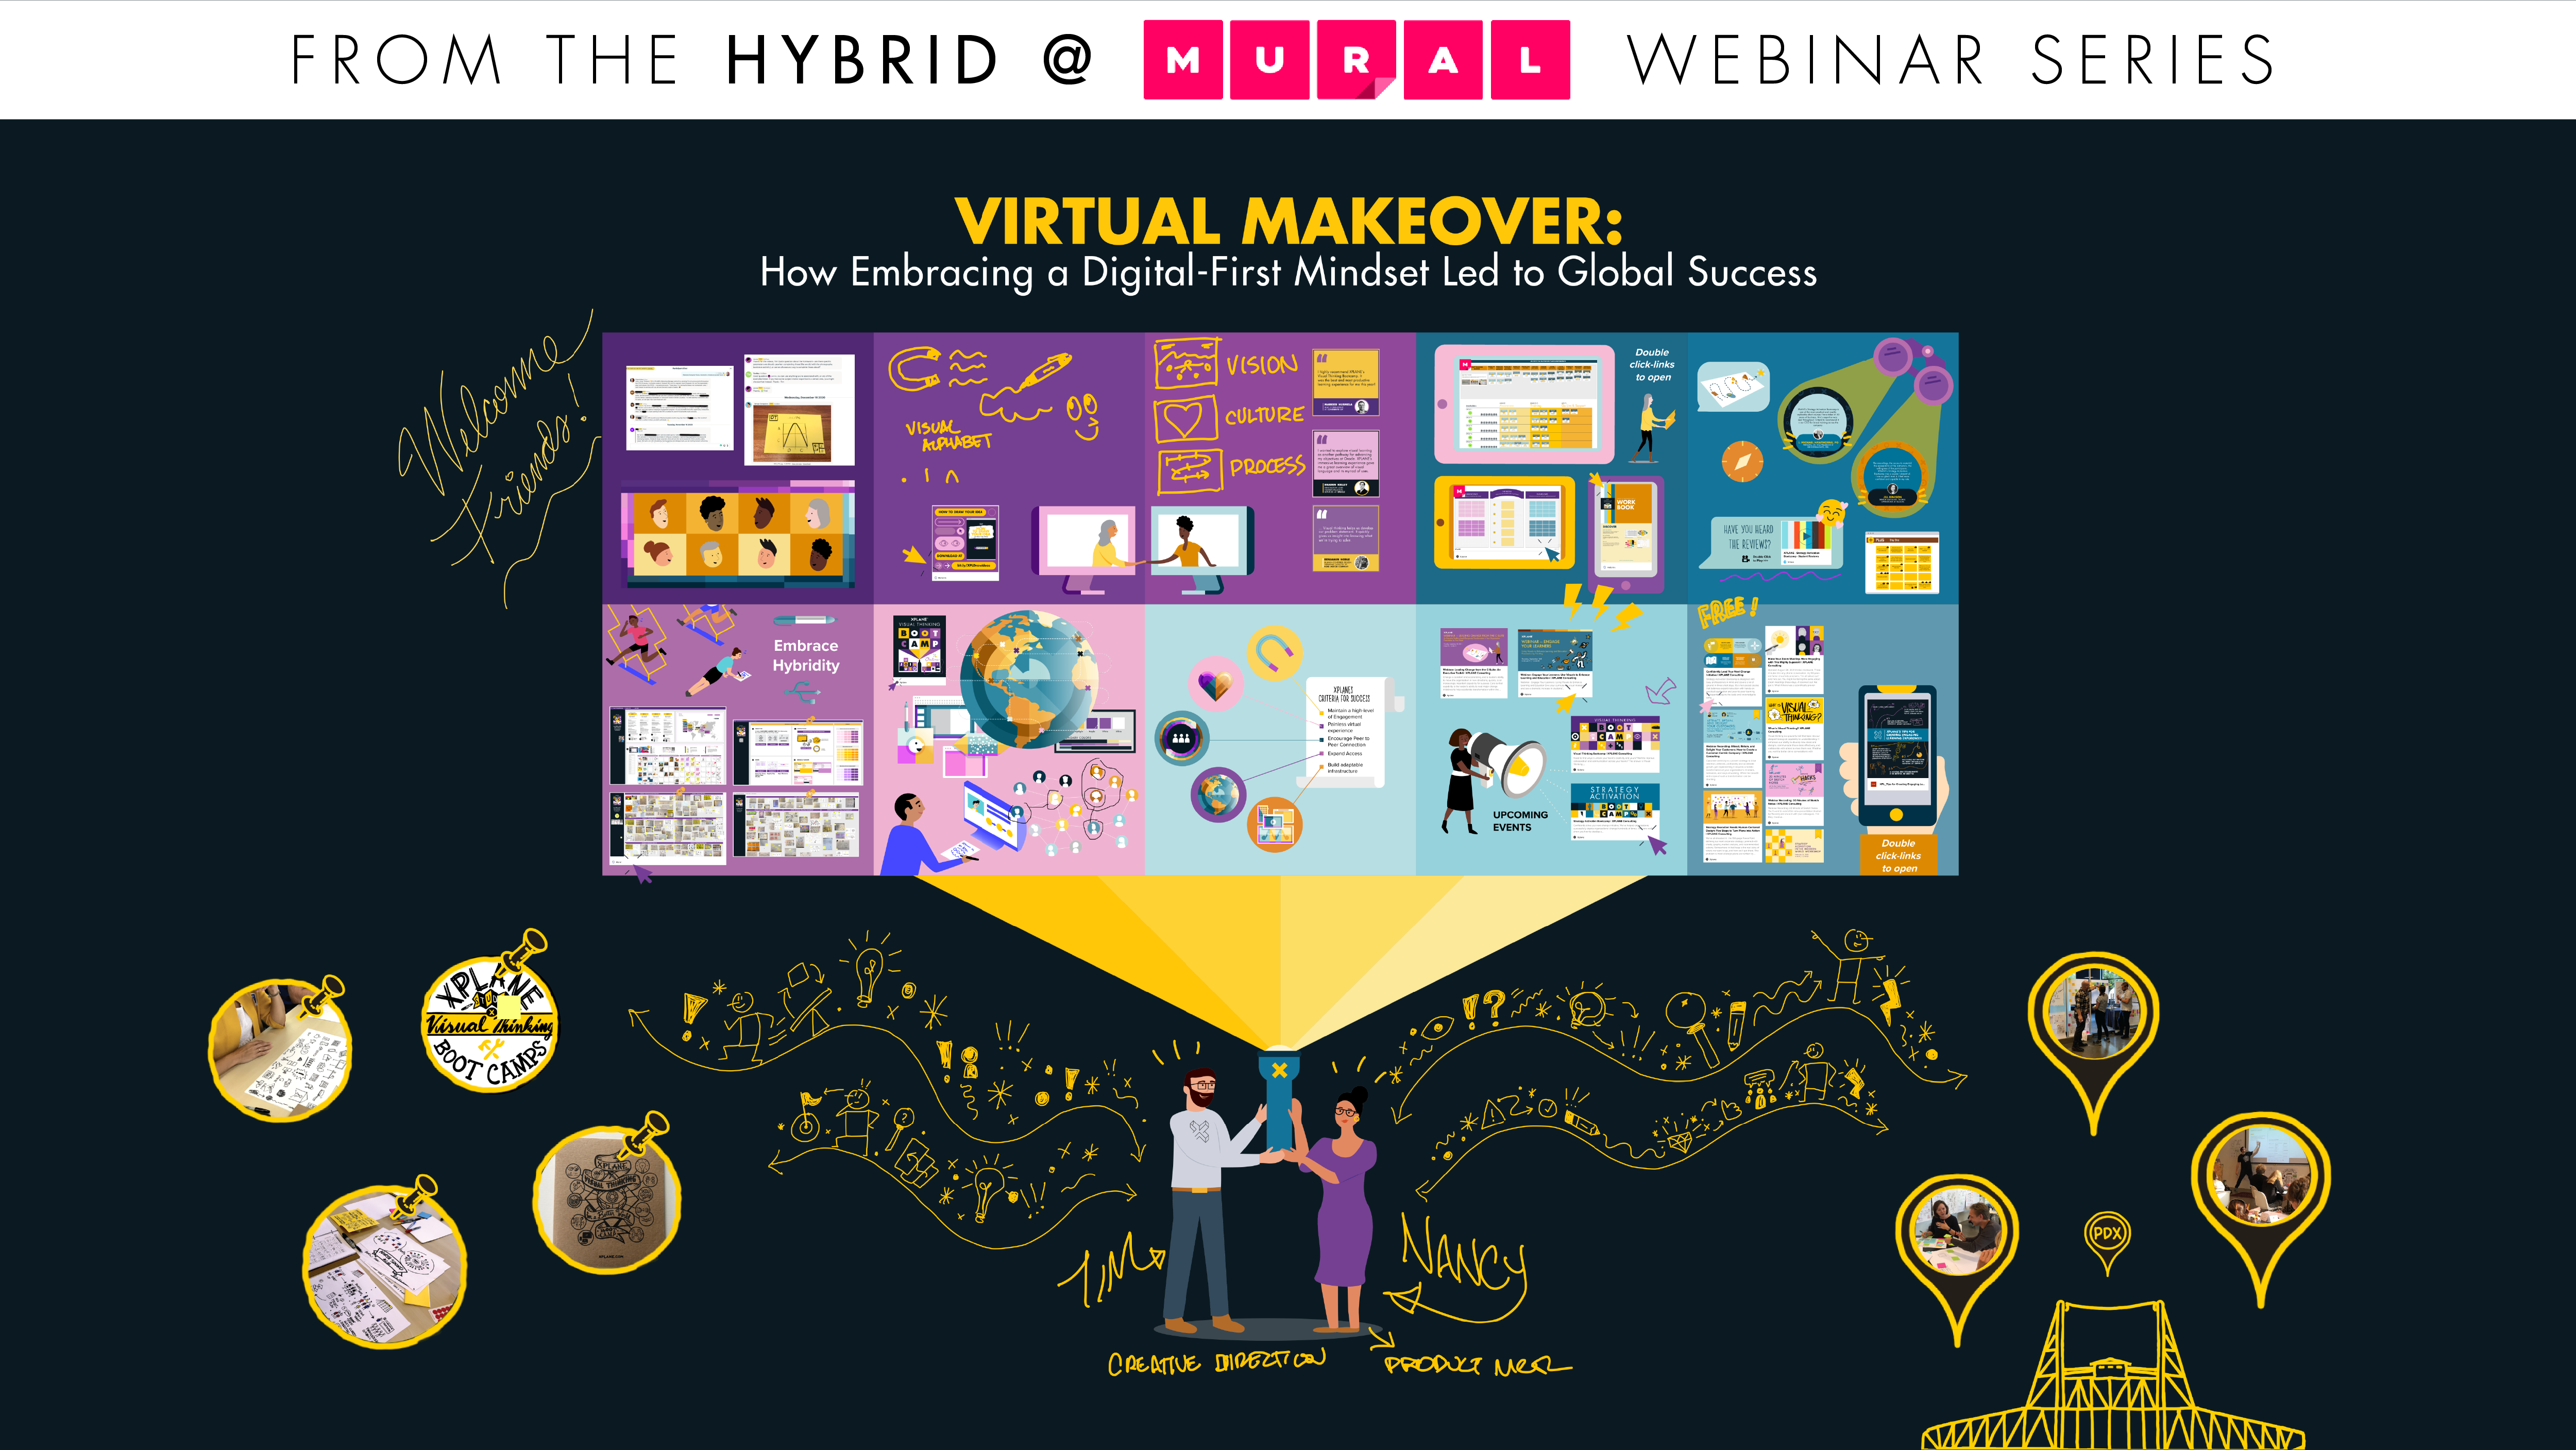 """Header image of a MURAL board with a variety of XPLANE content having a flashlight shown on it by Creative Director Tim May, and Program Manager Nancy Sewell. Image reads """"From the Hybrid at Mural Webinar Series"""" followed by """"Virtual Makeover: How Embracing a Digital-First Mindset Led to Global Success"""""""